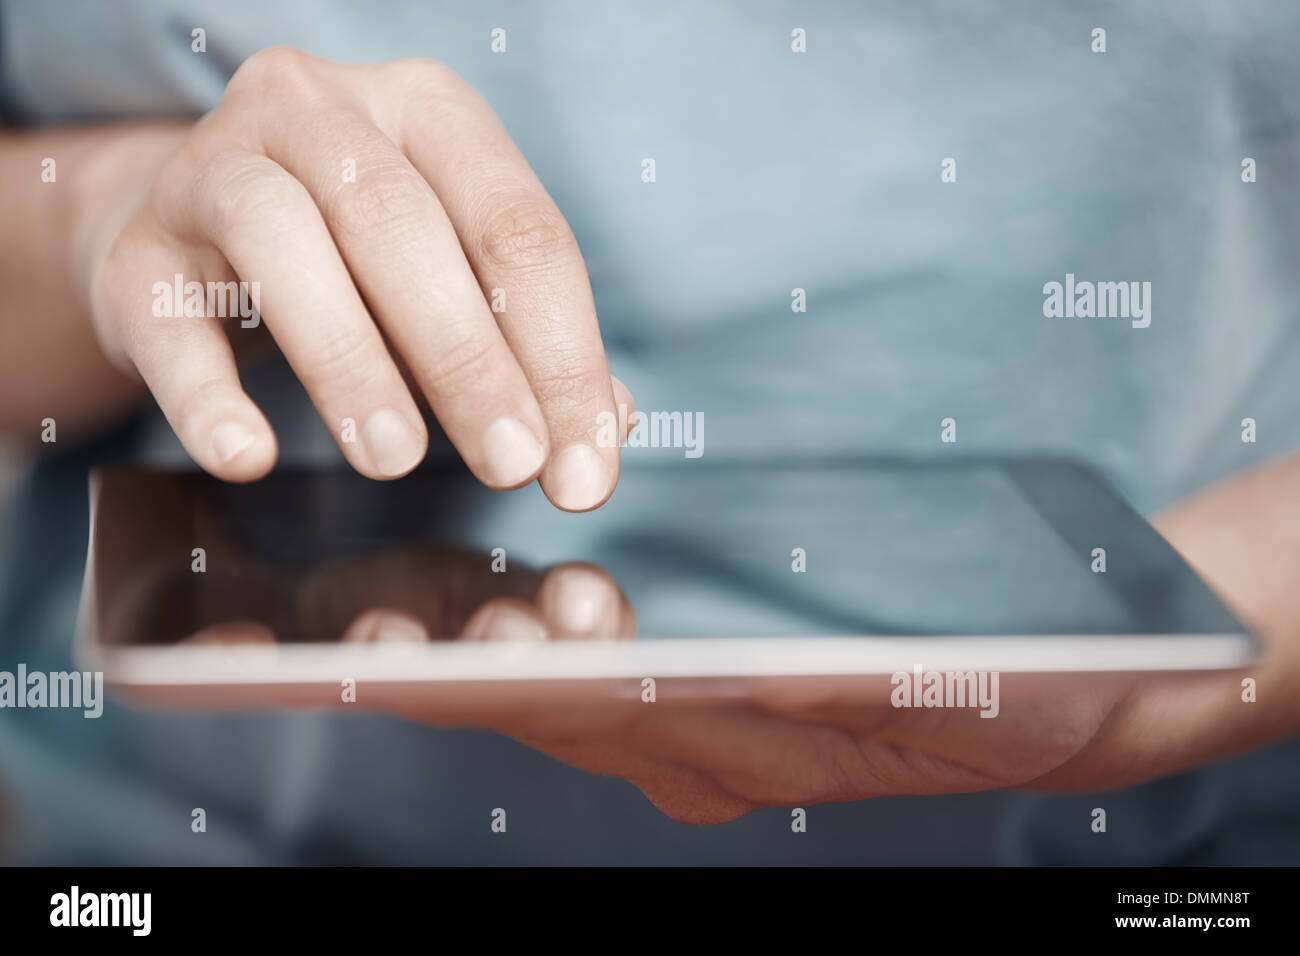 Pocketbook Stock Photos & Pocketbook Stock Images - Alamy